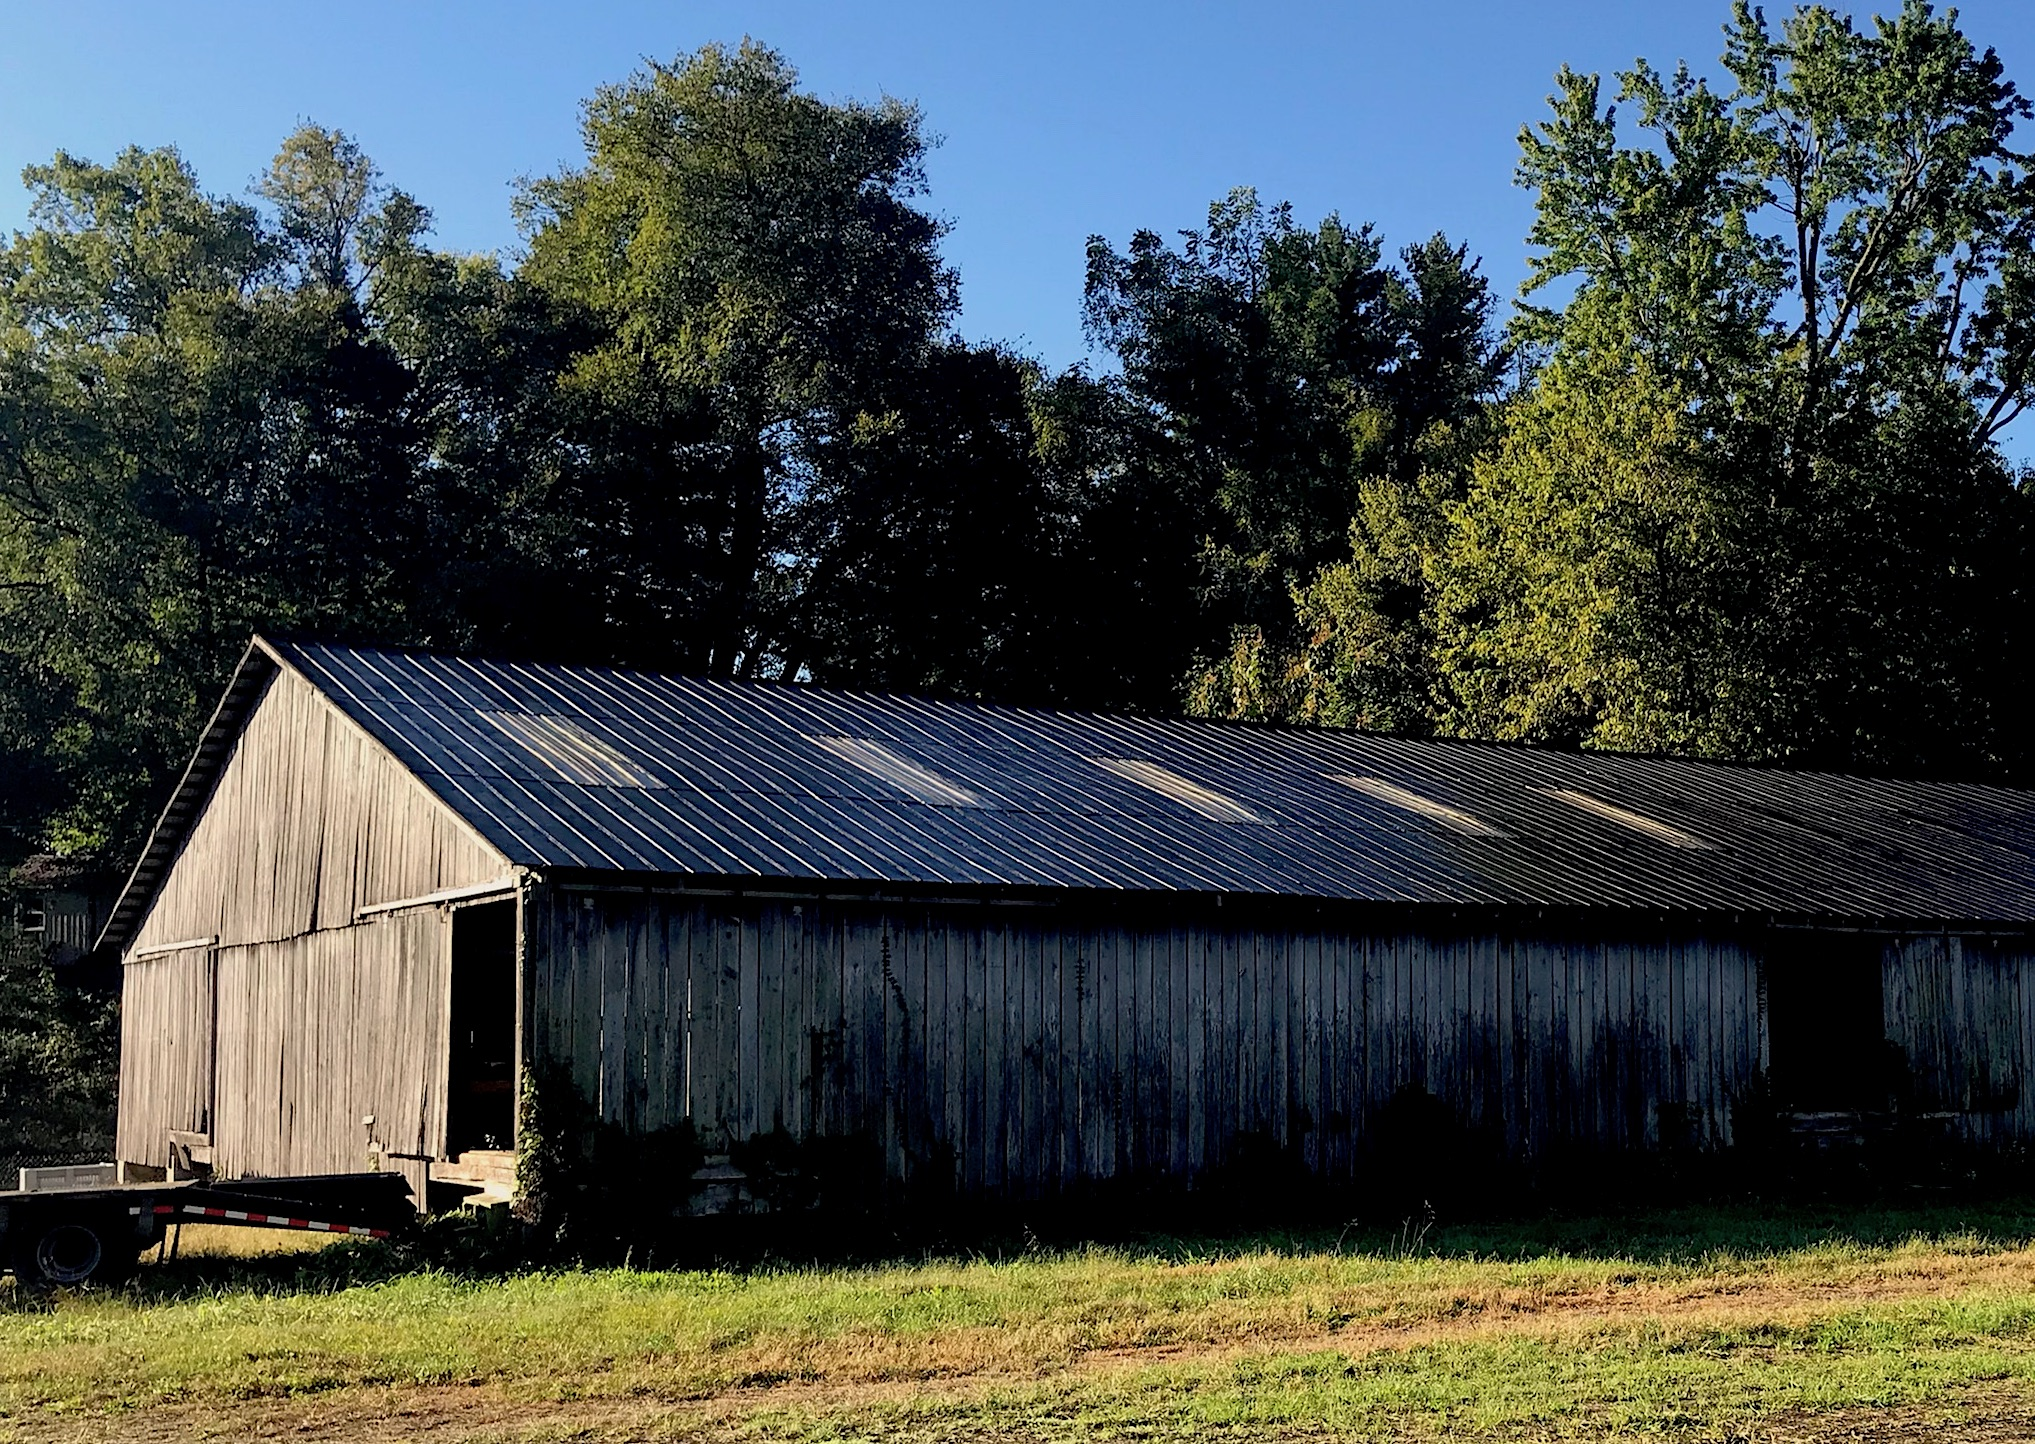 One of the barns in the Eastern US disassembled for our Sawmill Oak product.